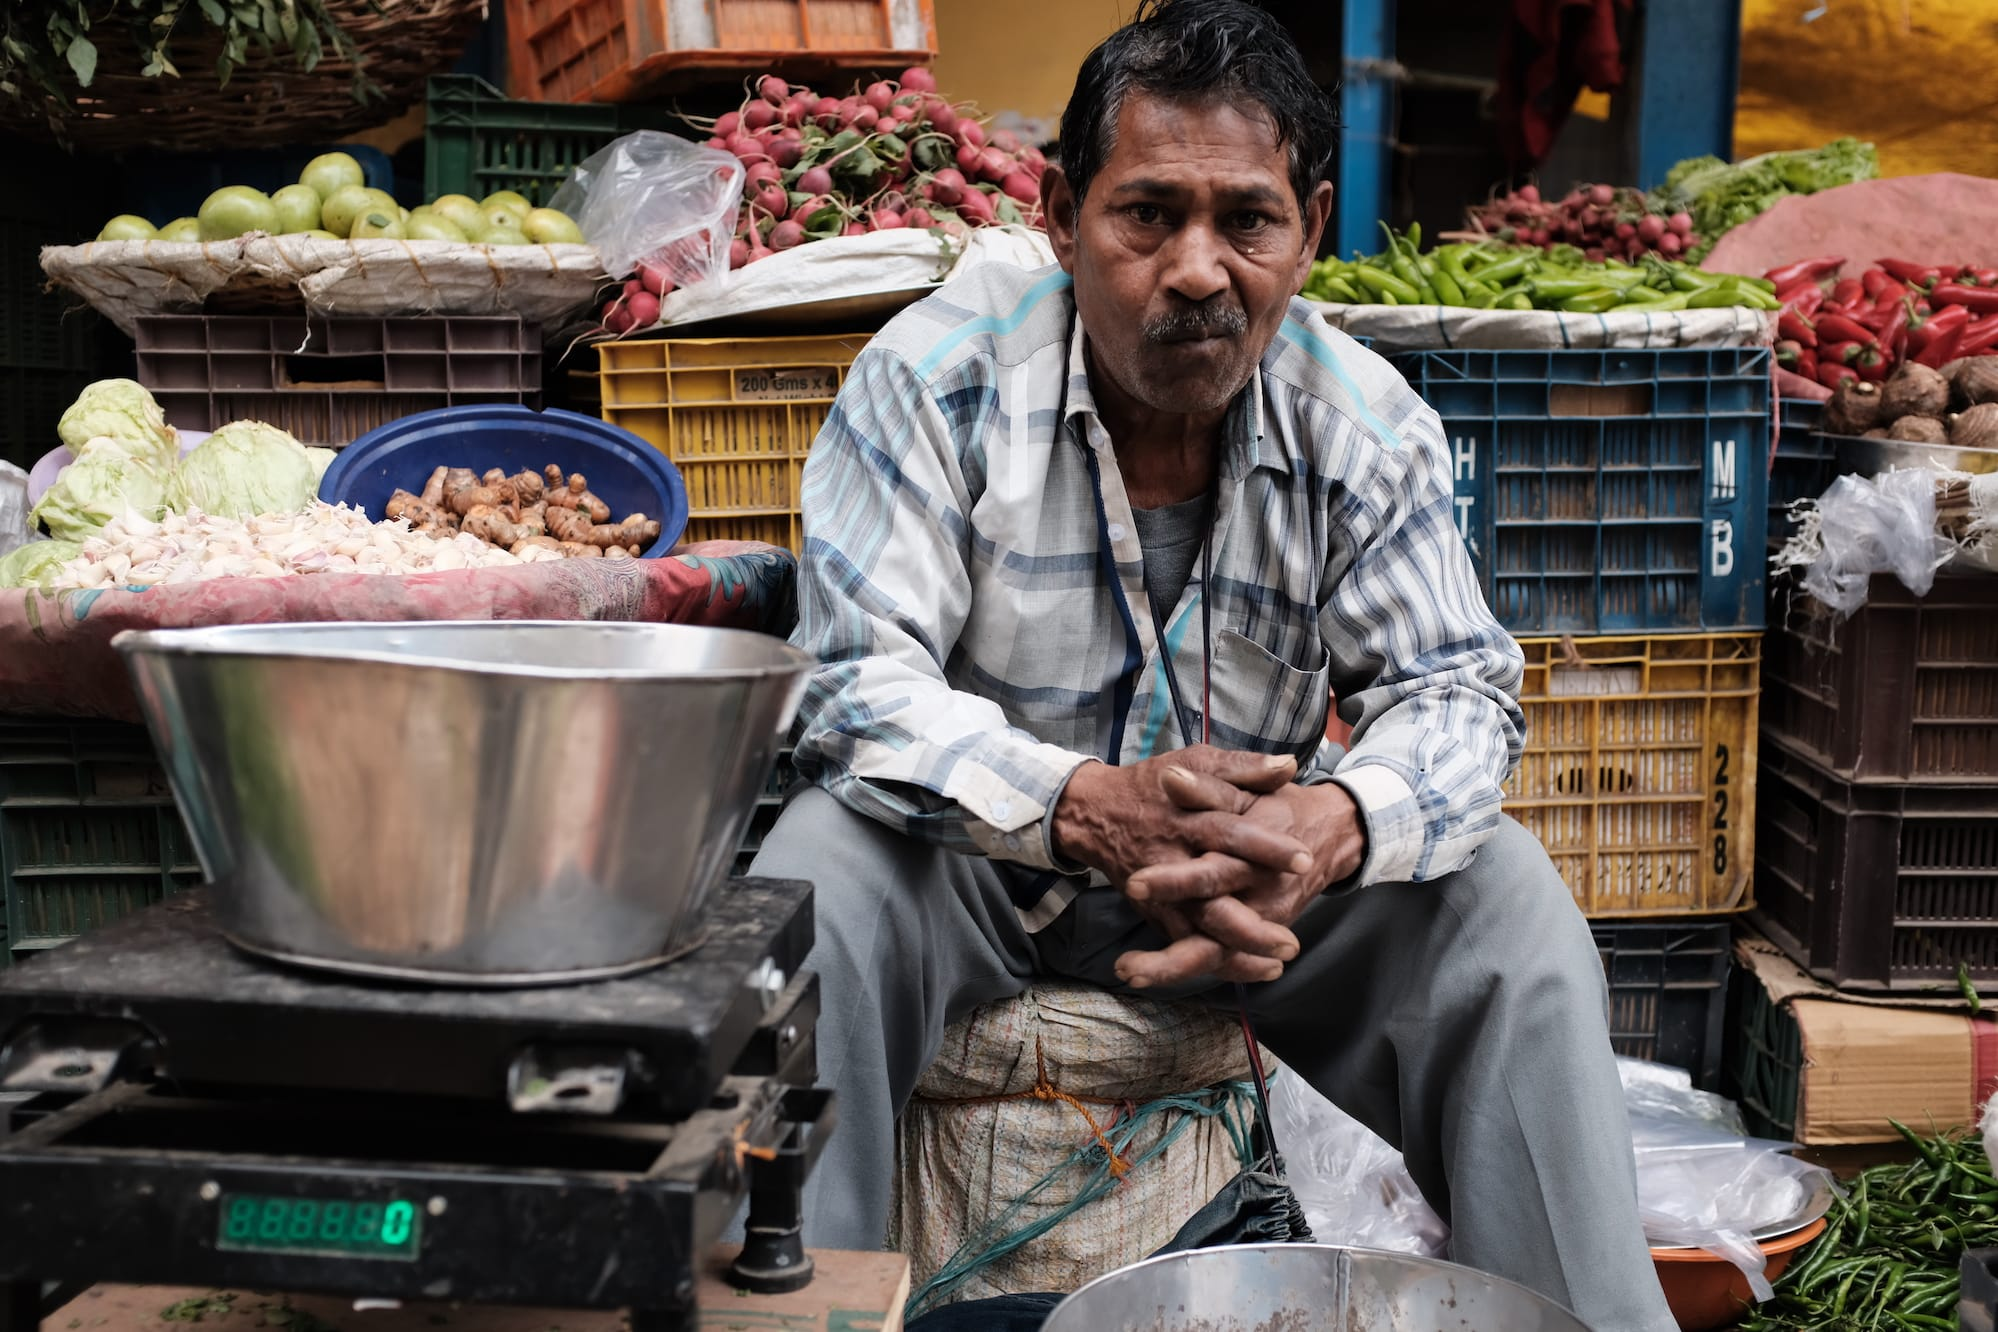 A Vegetable Vendor Looks at Camera